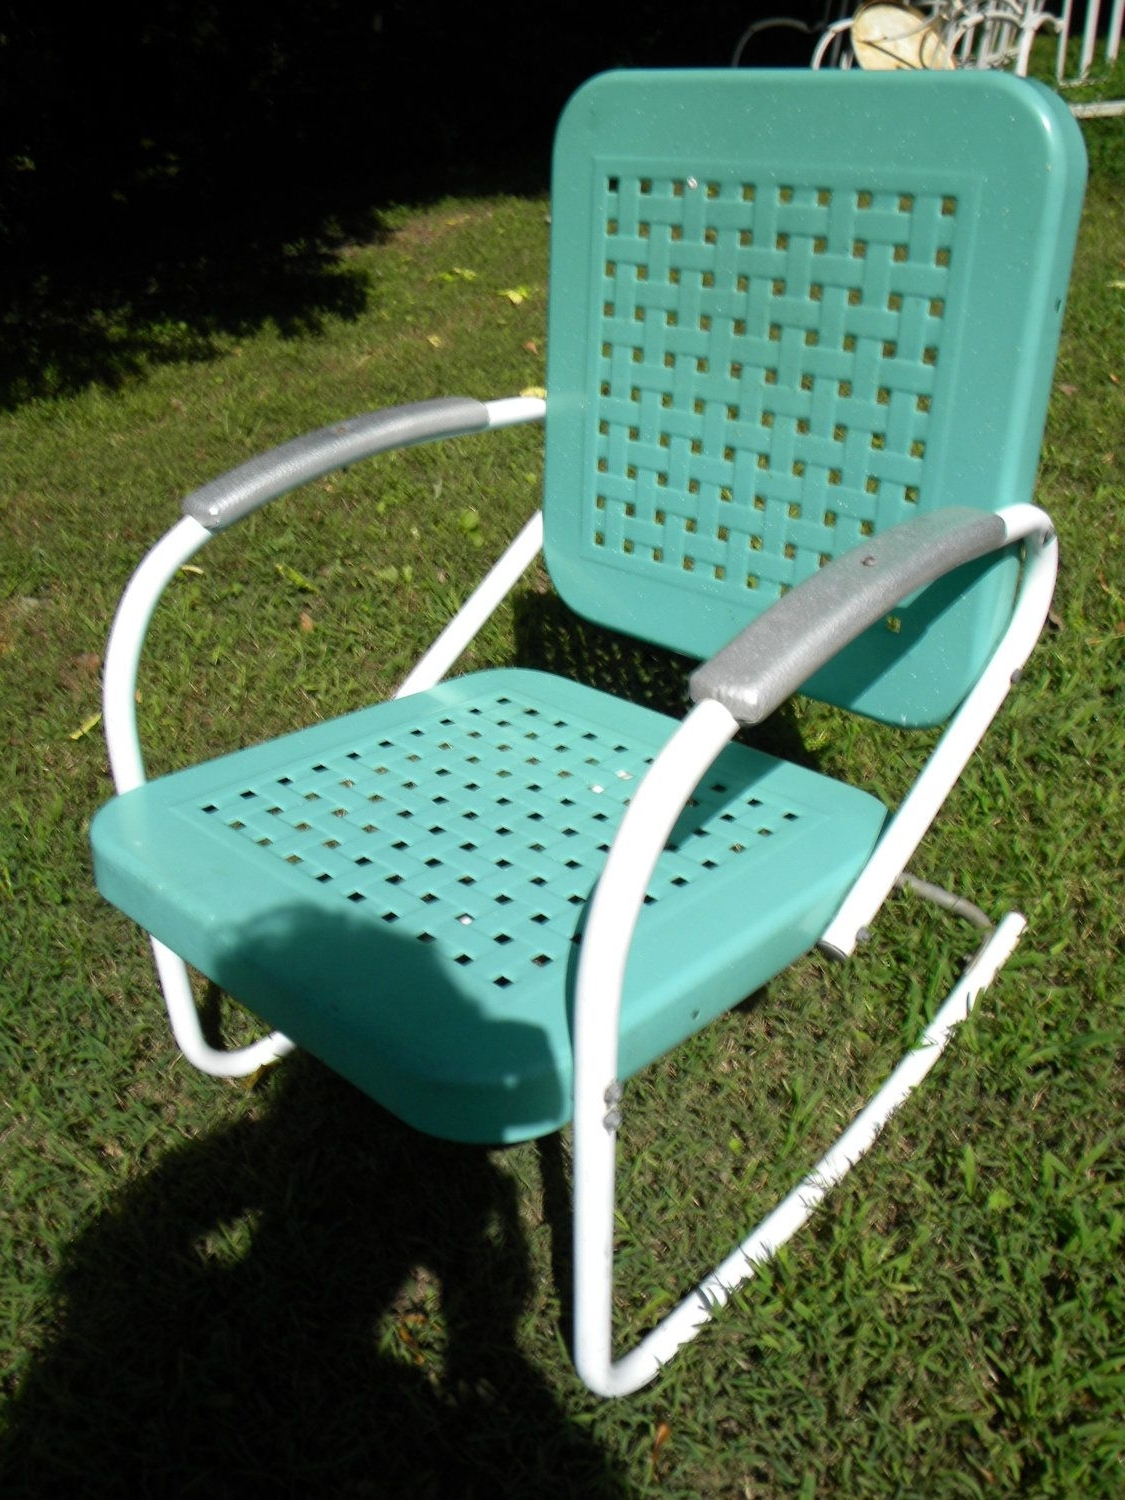 Retro Outdoor Rocking Chairs Inside Most Up To Date Vtg 50s 60s Retro Outdoor Metal Lawn Patio Porch Rocking Chair (View 4 of 20)